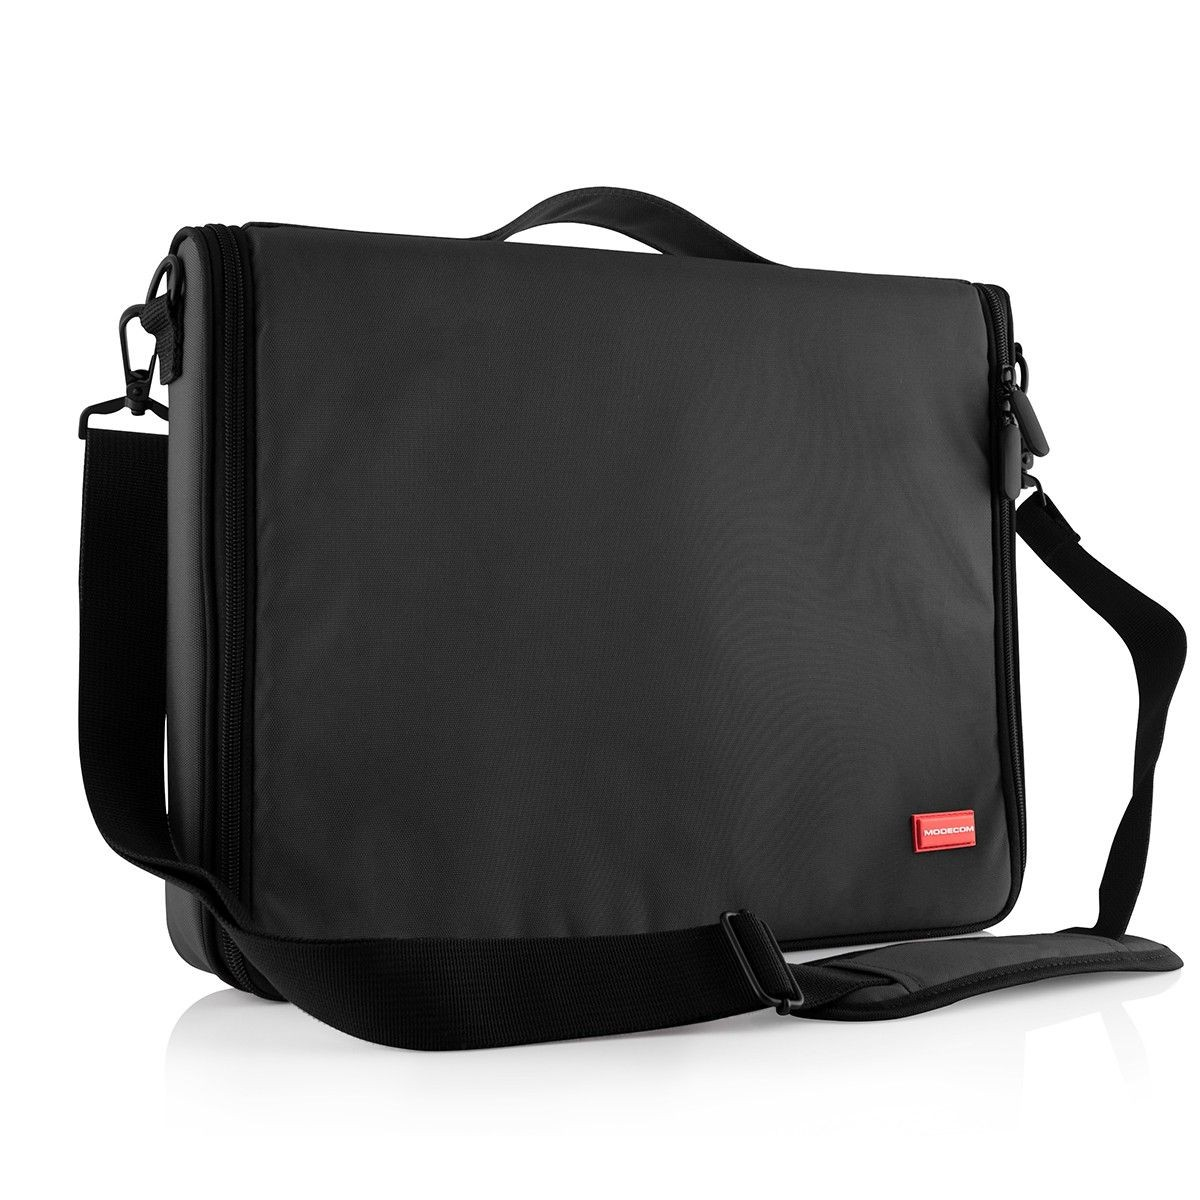 ModeCom Torba TORINO 15,6 do Laptopa 15,6''